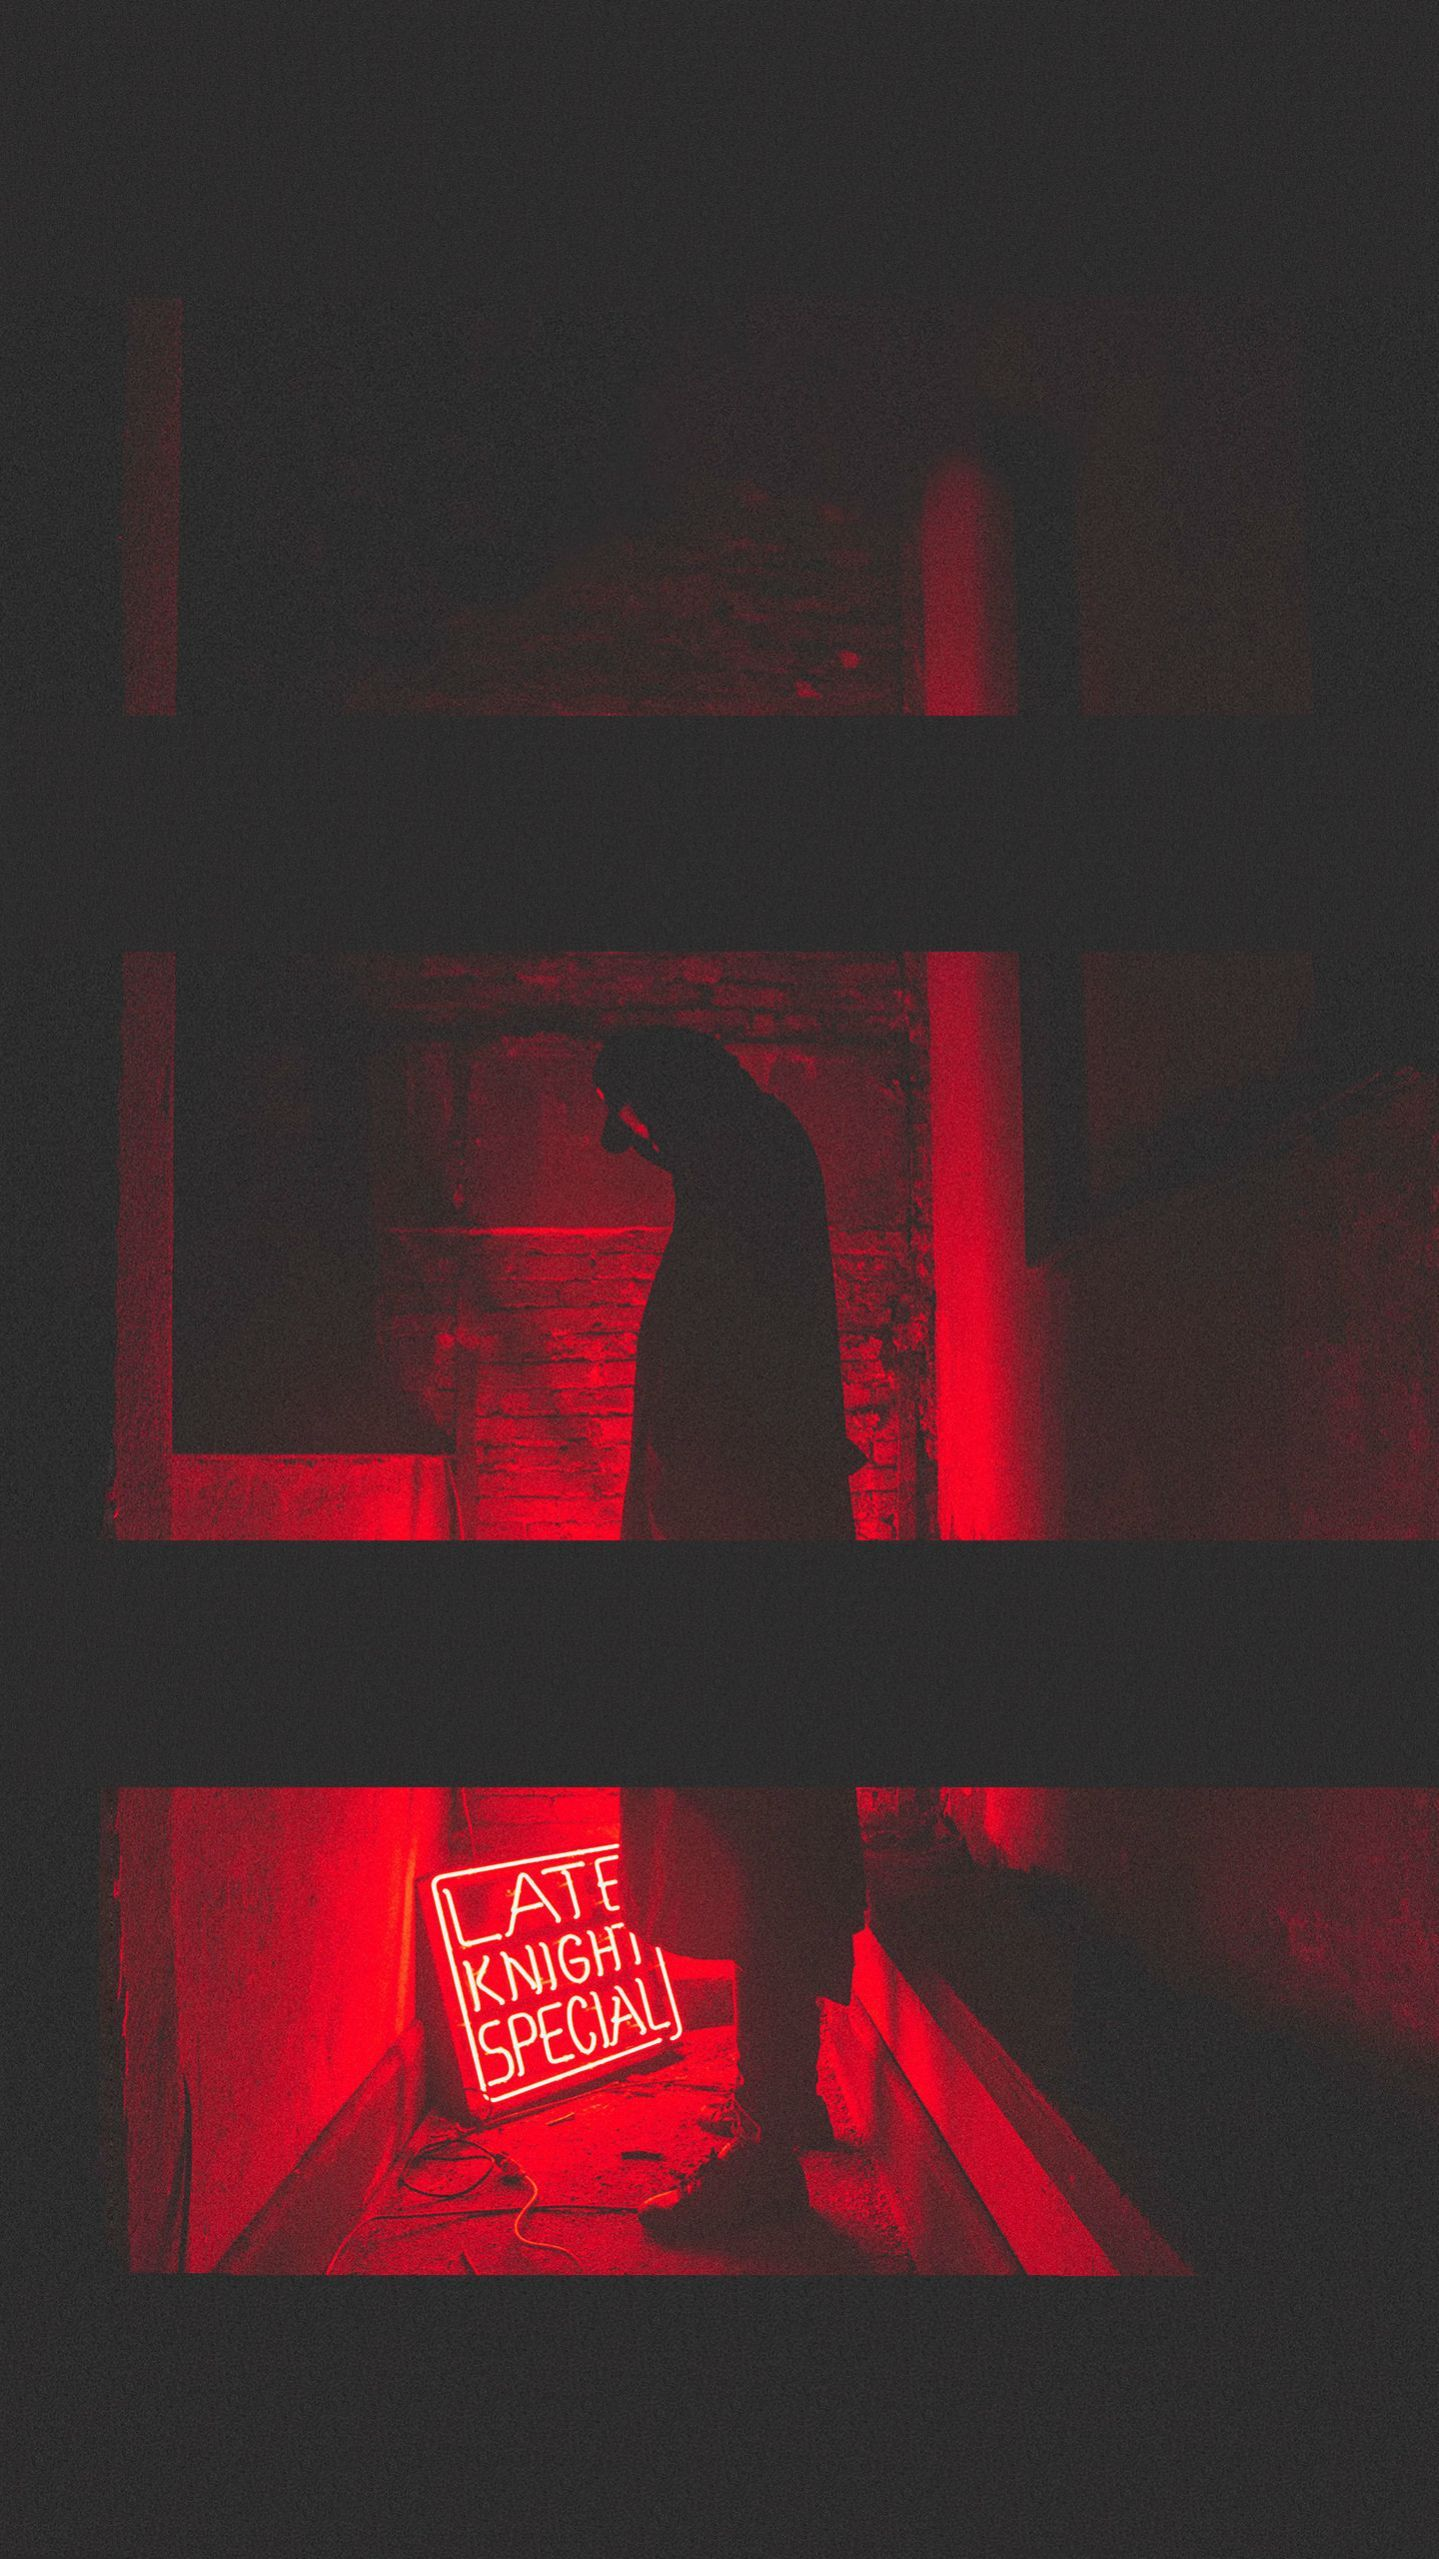 Hiphop Wallpapers In 2020 Neon Aesthetic Red Aesthetic Phone